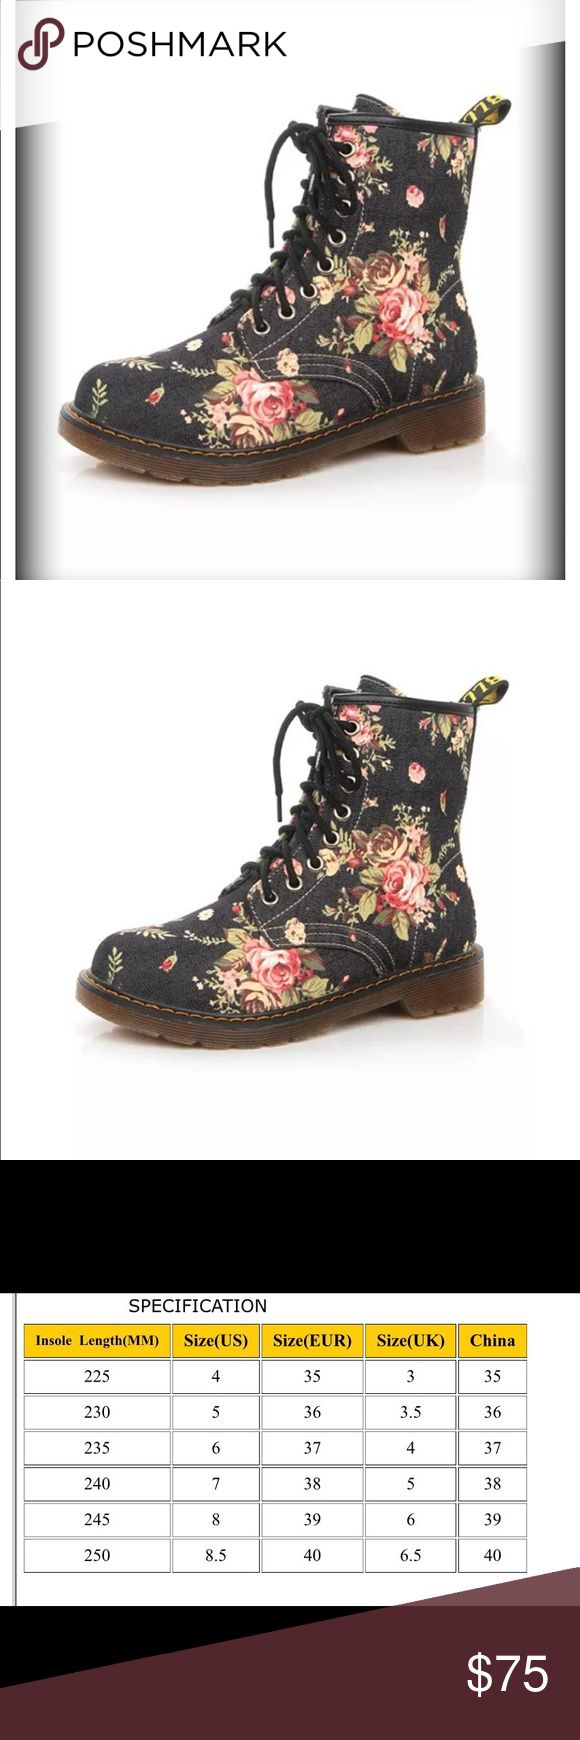 SEXY FLORAL LACE UP HIGHTOPS Lace up high top boots! Pretty floral on a black background! Plaid lining! PU leather and skid resistant sole These are really cute! New without a box! Please check size before purchasing  Shoes Ankle Boots & Booties